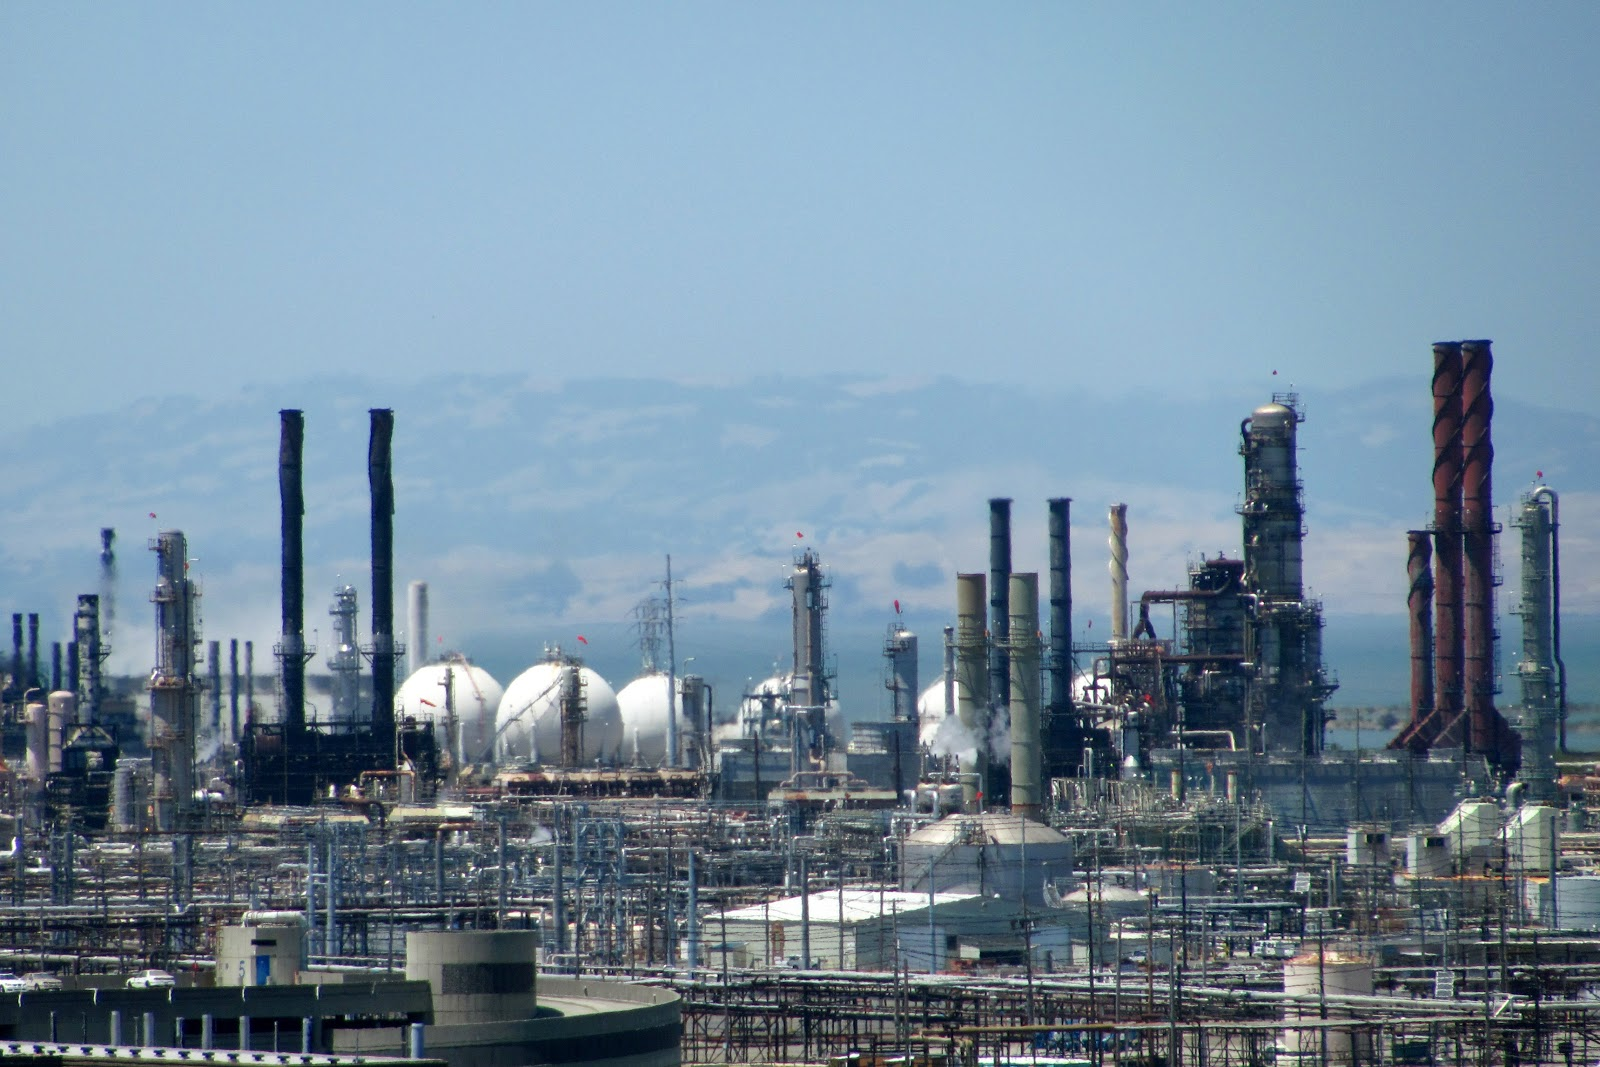 Chevron Richmond Refinery, CA